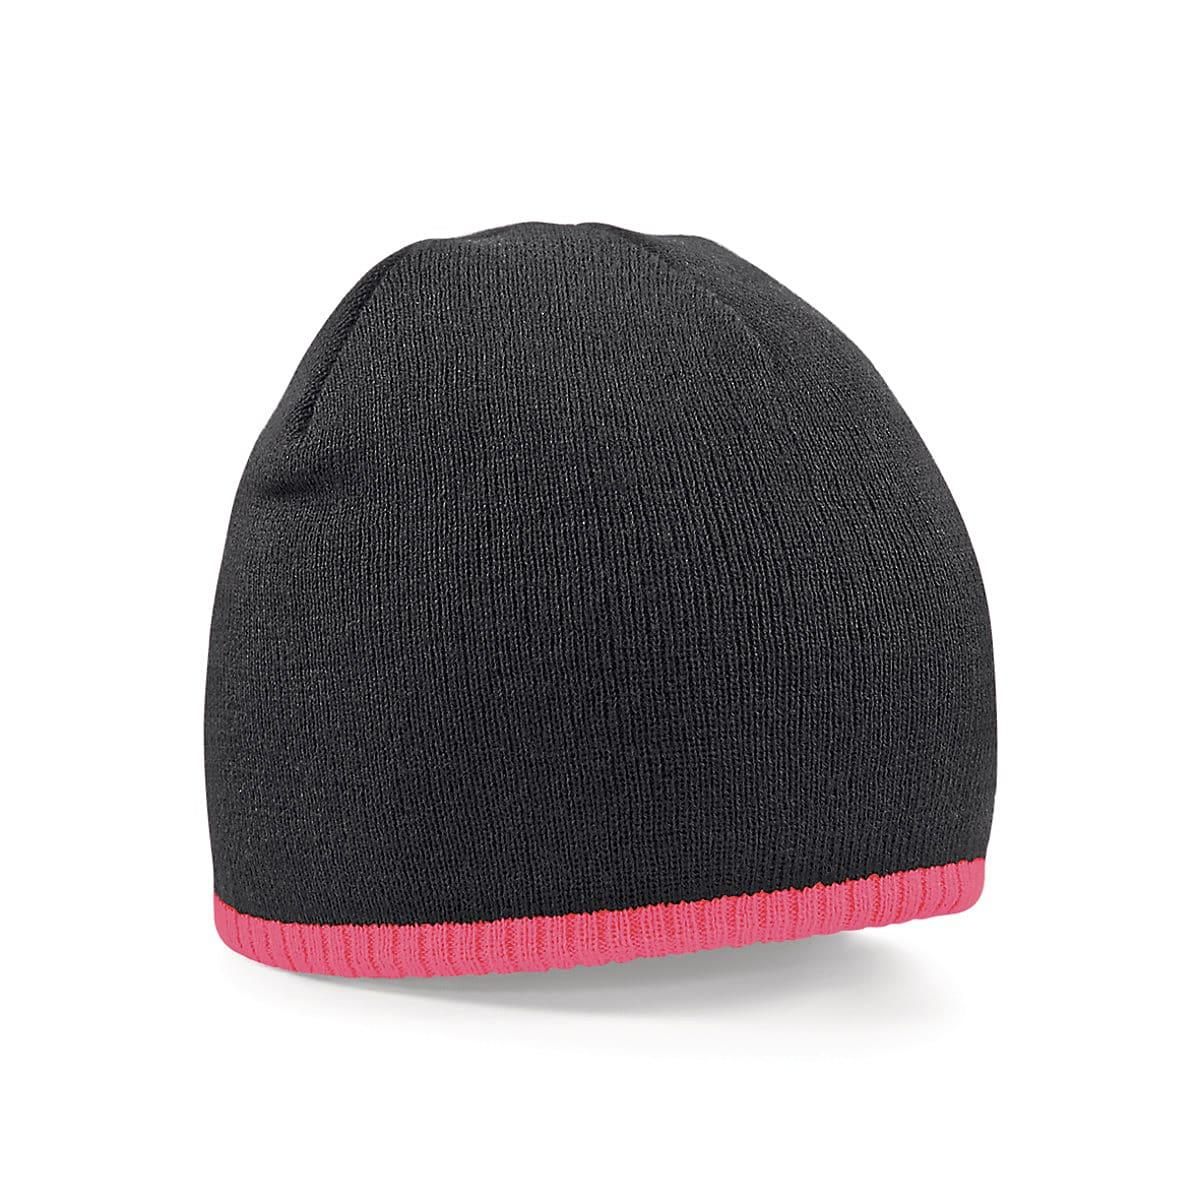 Beechfield Two-Tone Beanie Knitted Hat in Black / Fluorescent Pink (Product Code: B44C)